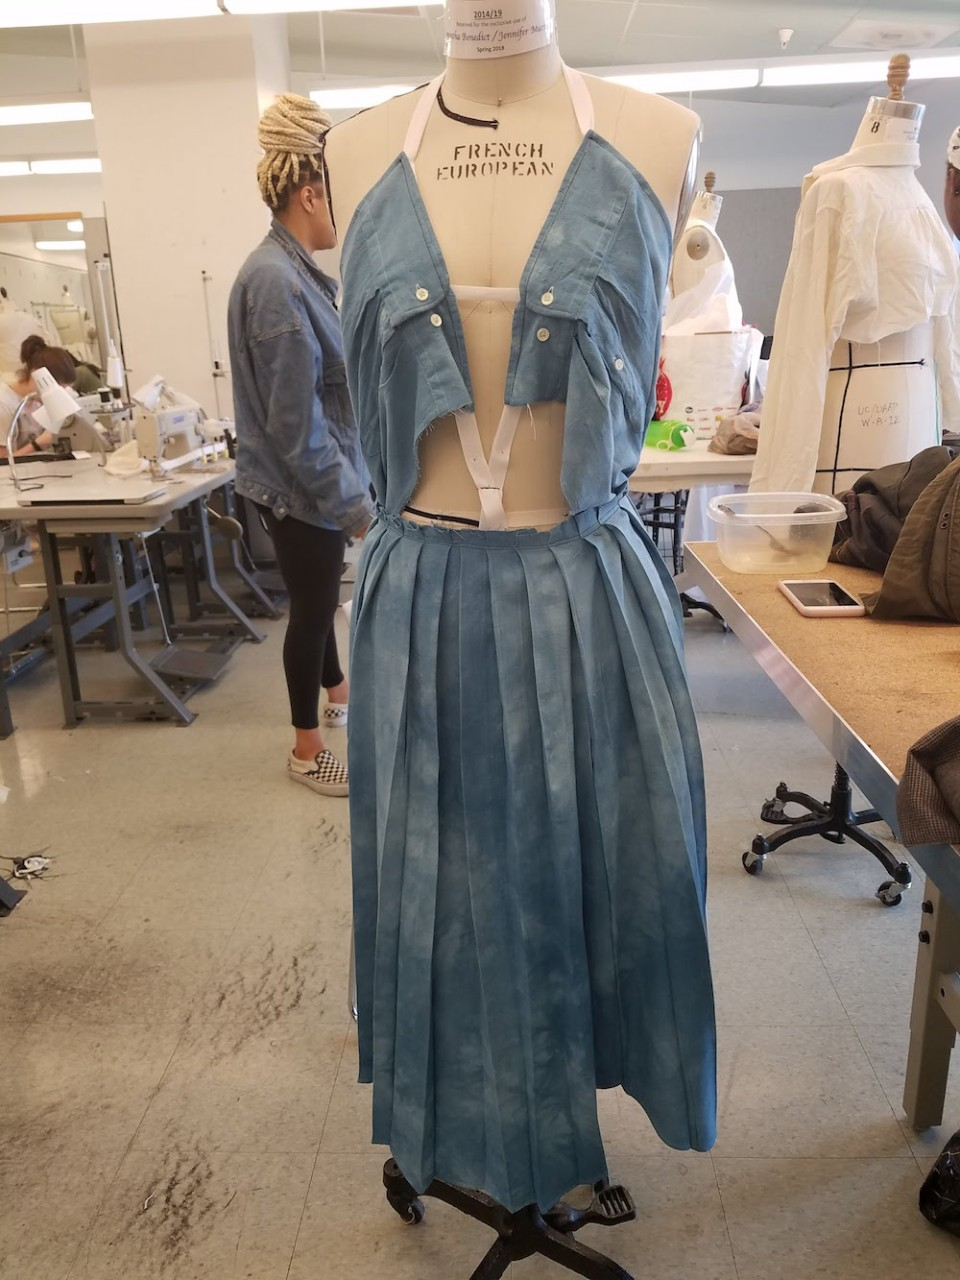 A blue dress made from two white button-up shirts on a dress form.